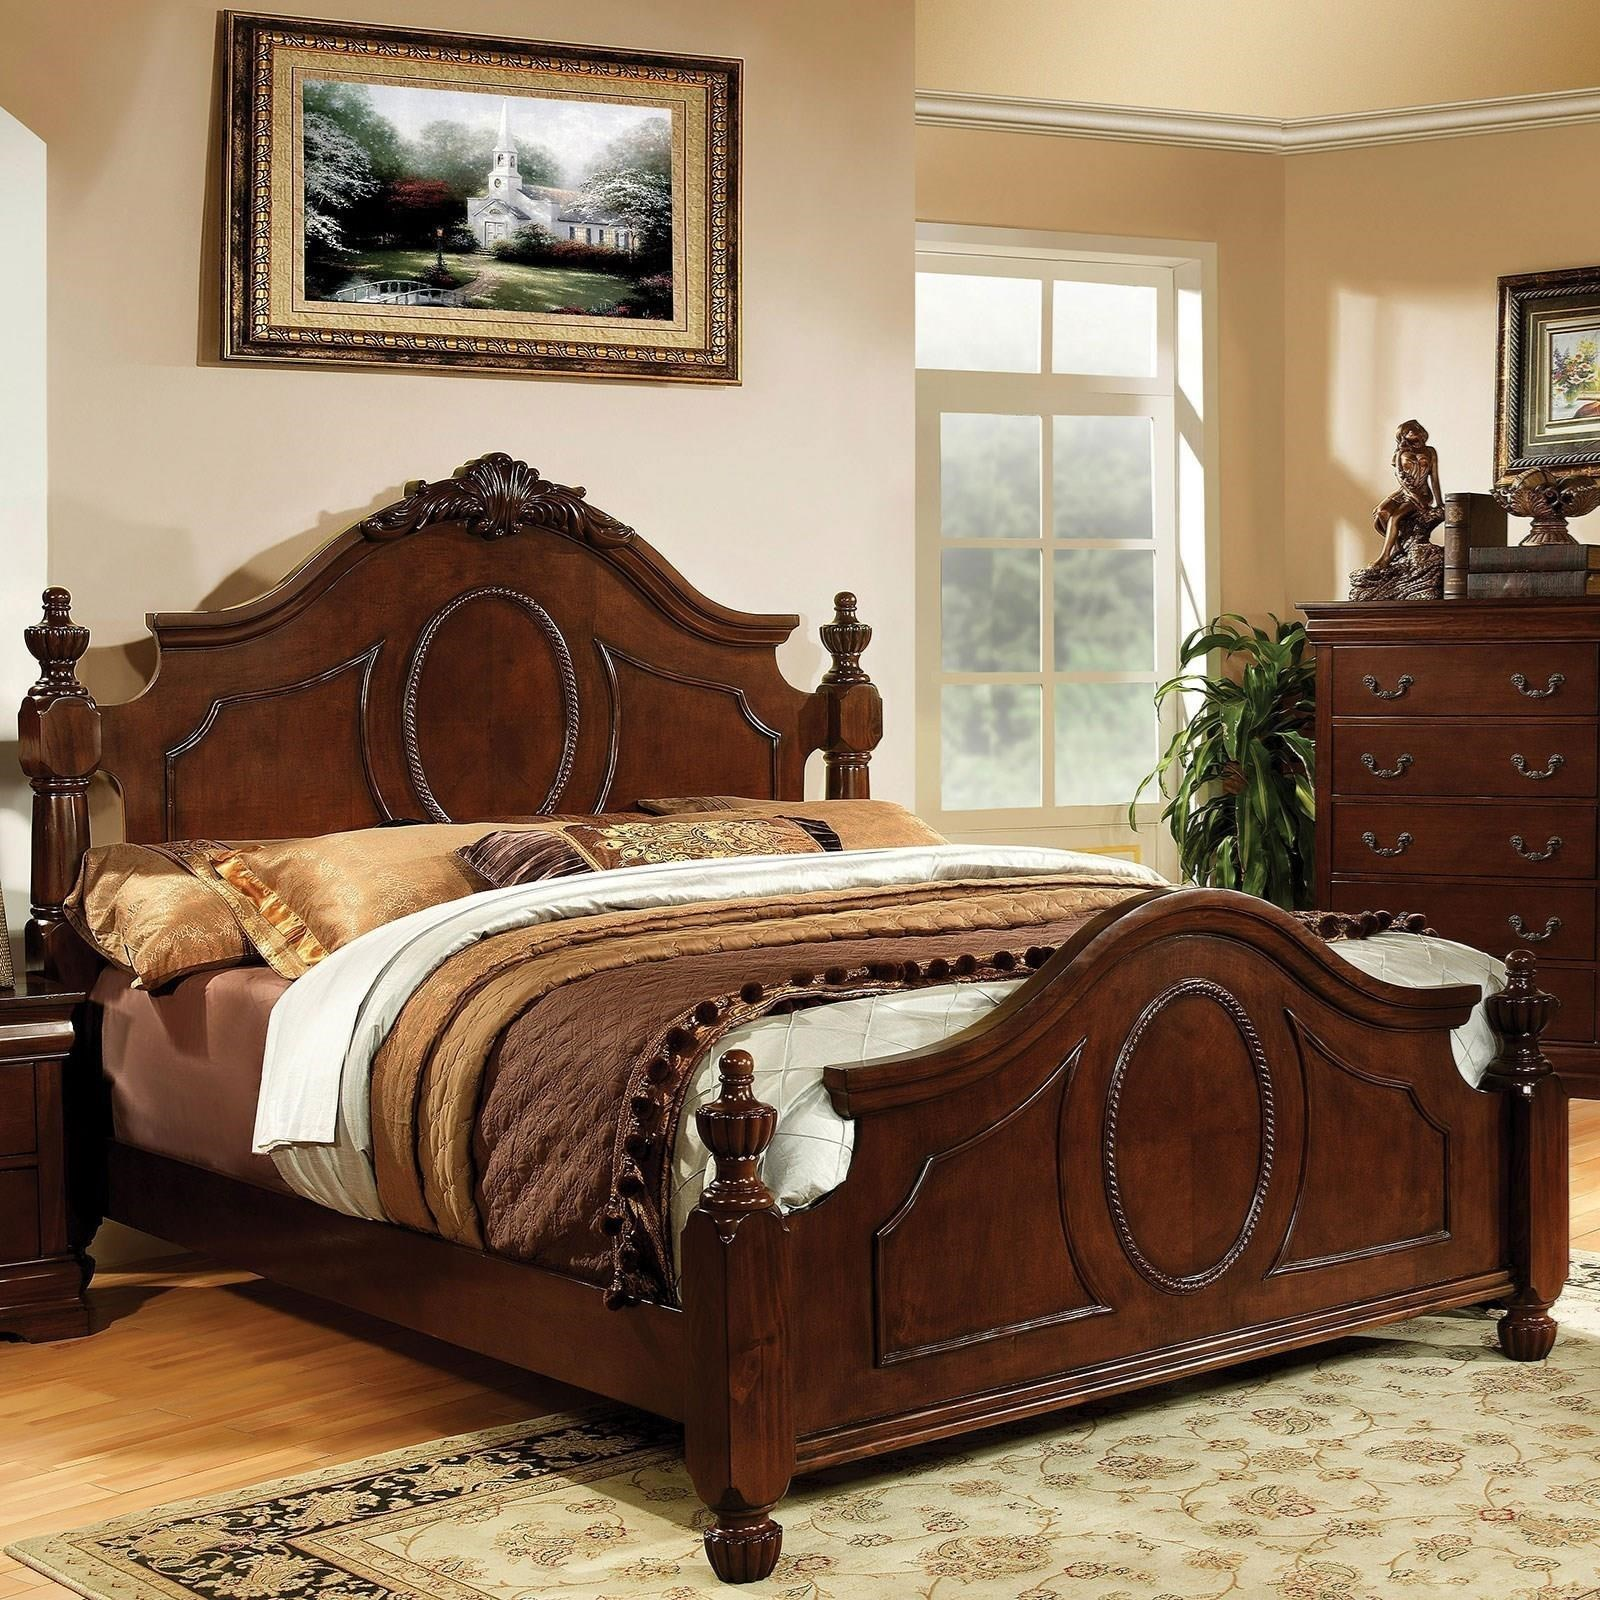 King Bed With Posts Velda Ii Traditional California King Size Bed With Decorative Carved Headboard And Posts By Furniture Of America At Rooms For Less